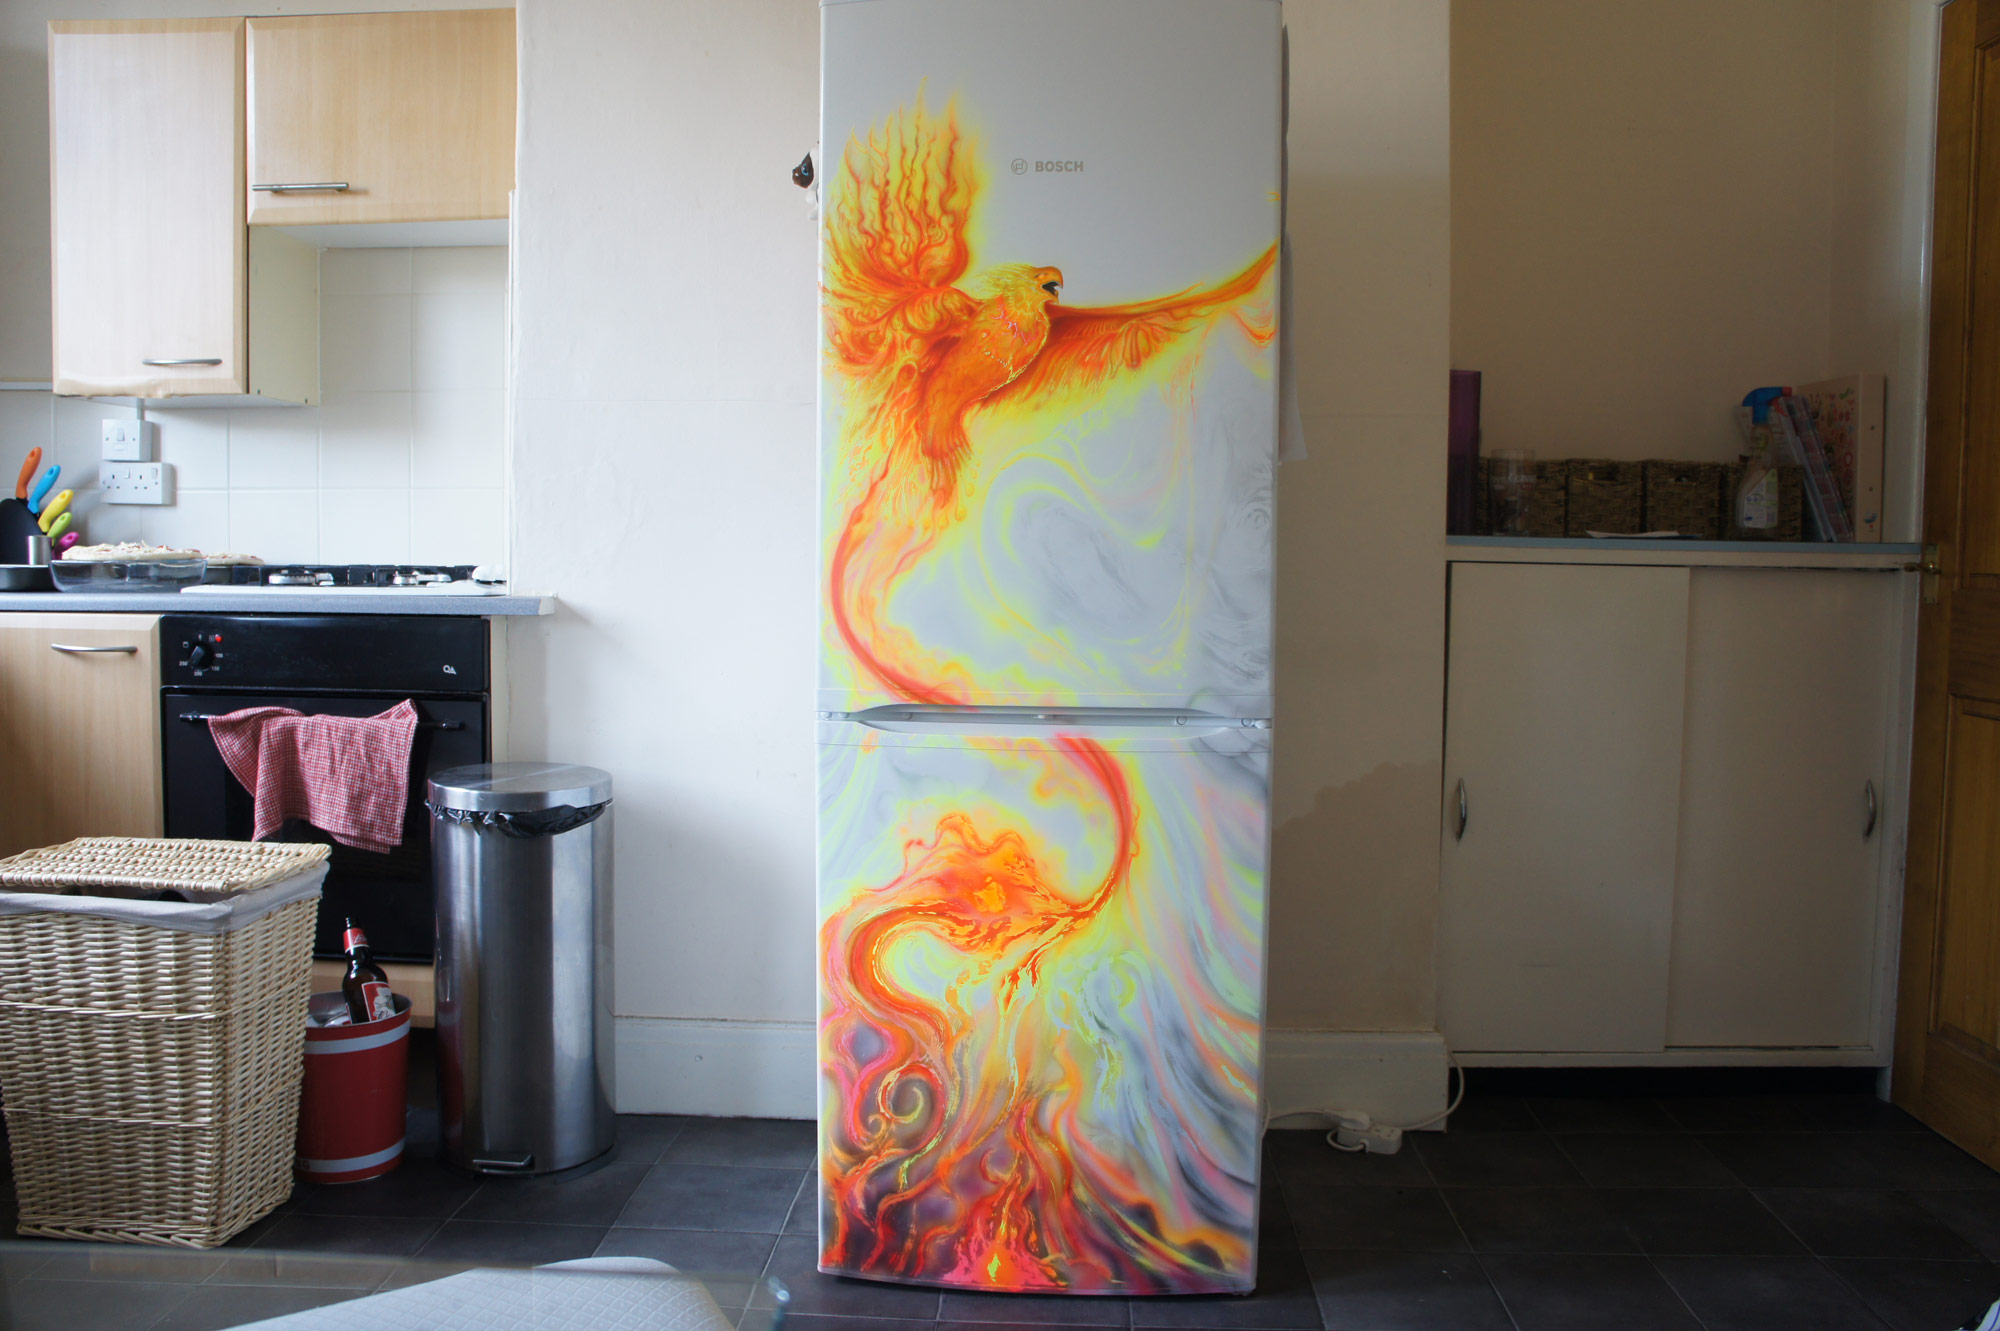 Phoenix on the refrigerator by LukeSobczakAirbrush